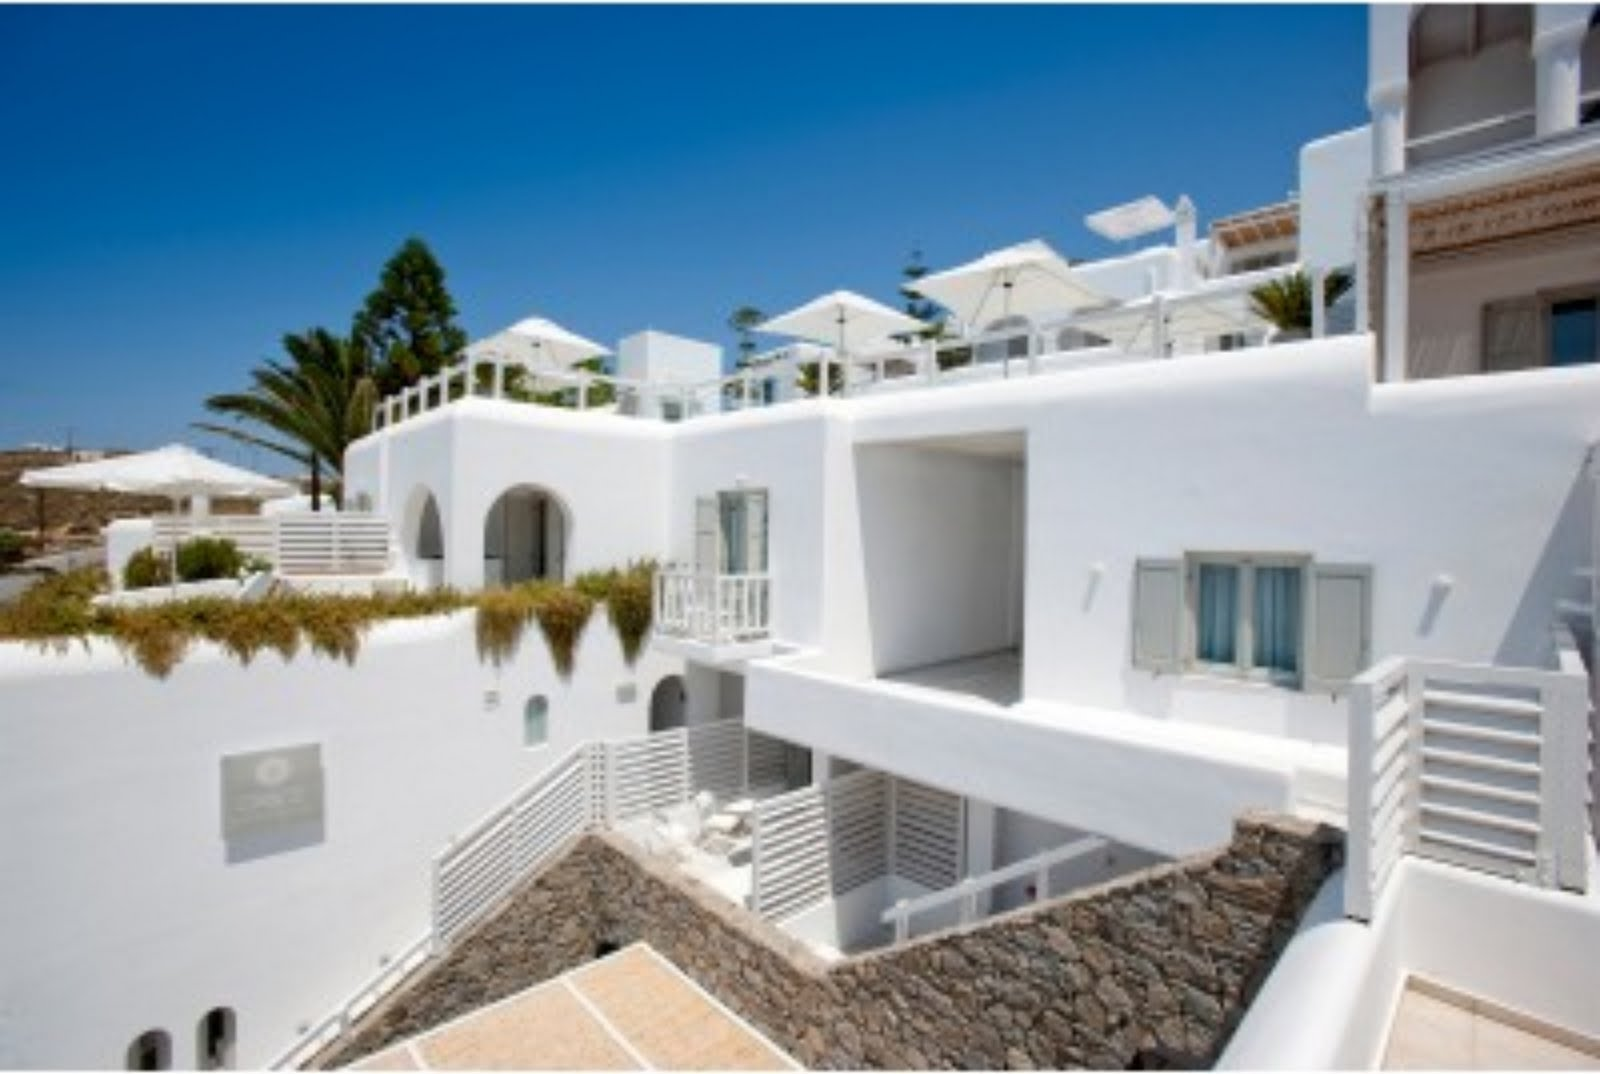 Lime meadow travelling in style mykonos greece for Top design hotels mykonos